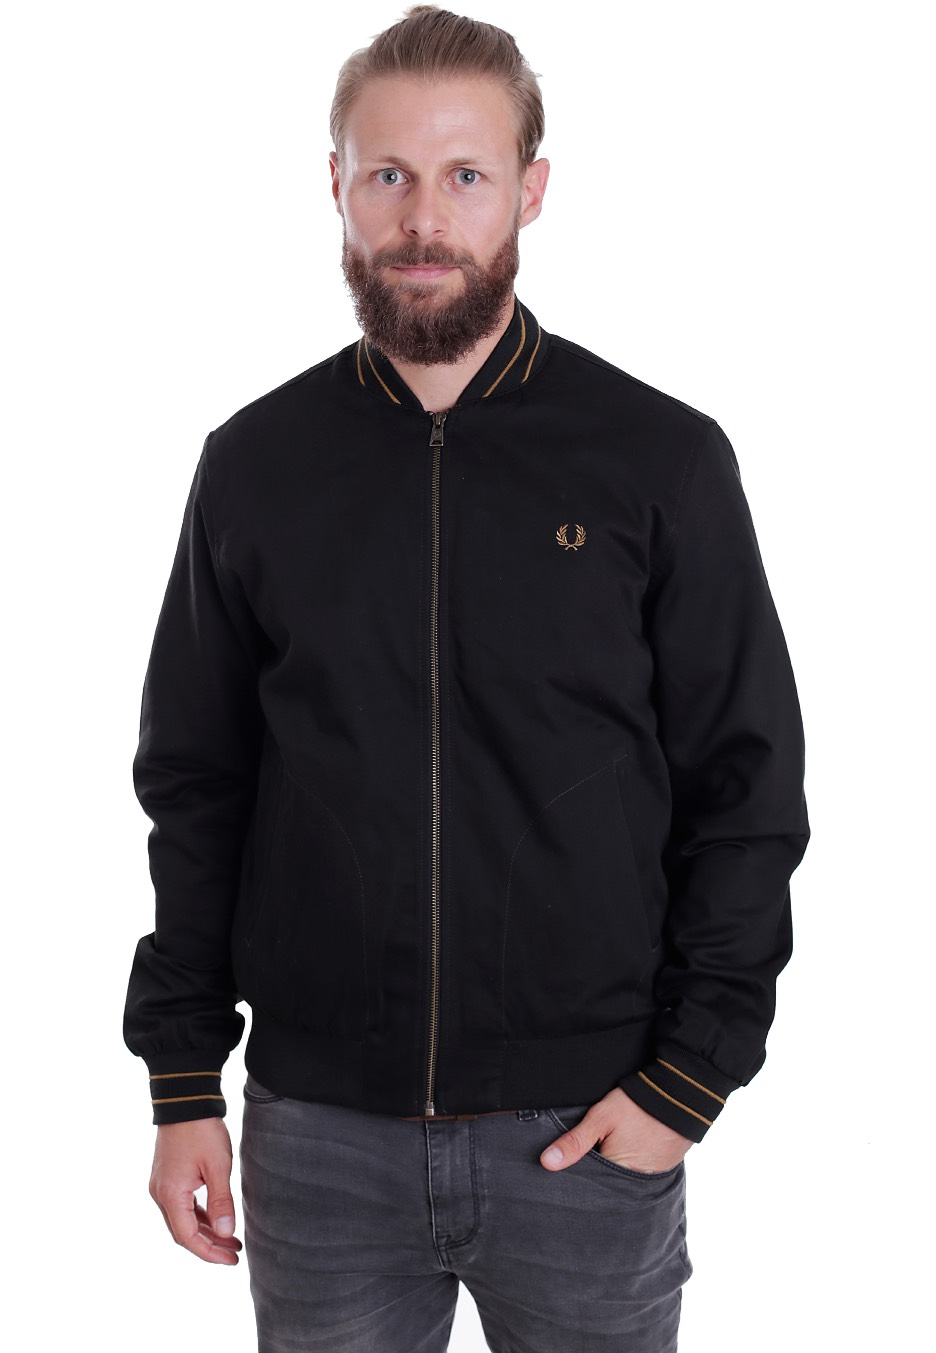 fred perry cotton bomber dark racing green jacket streetwear shop worldwide. Black Bedroom Furniture Sets. Home Design Ideas